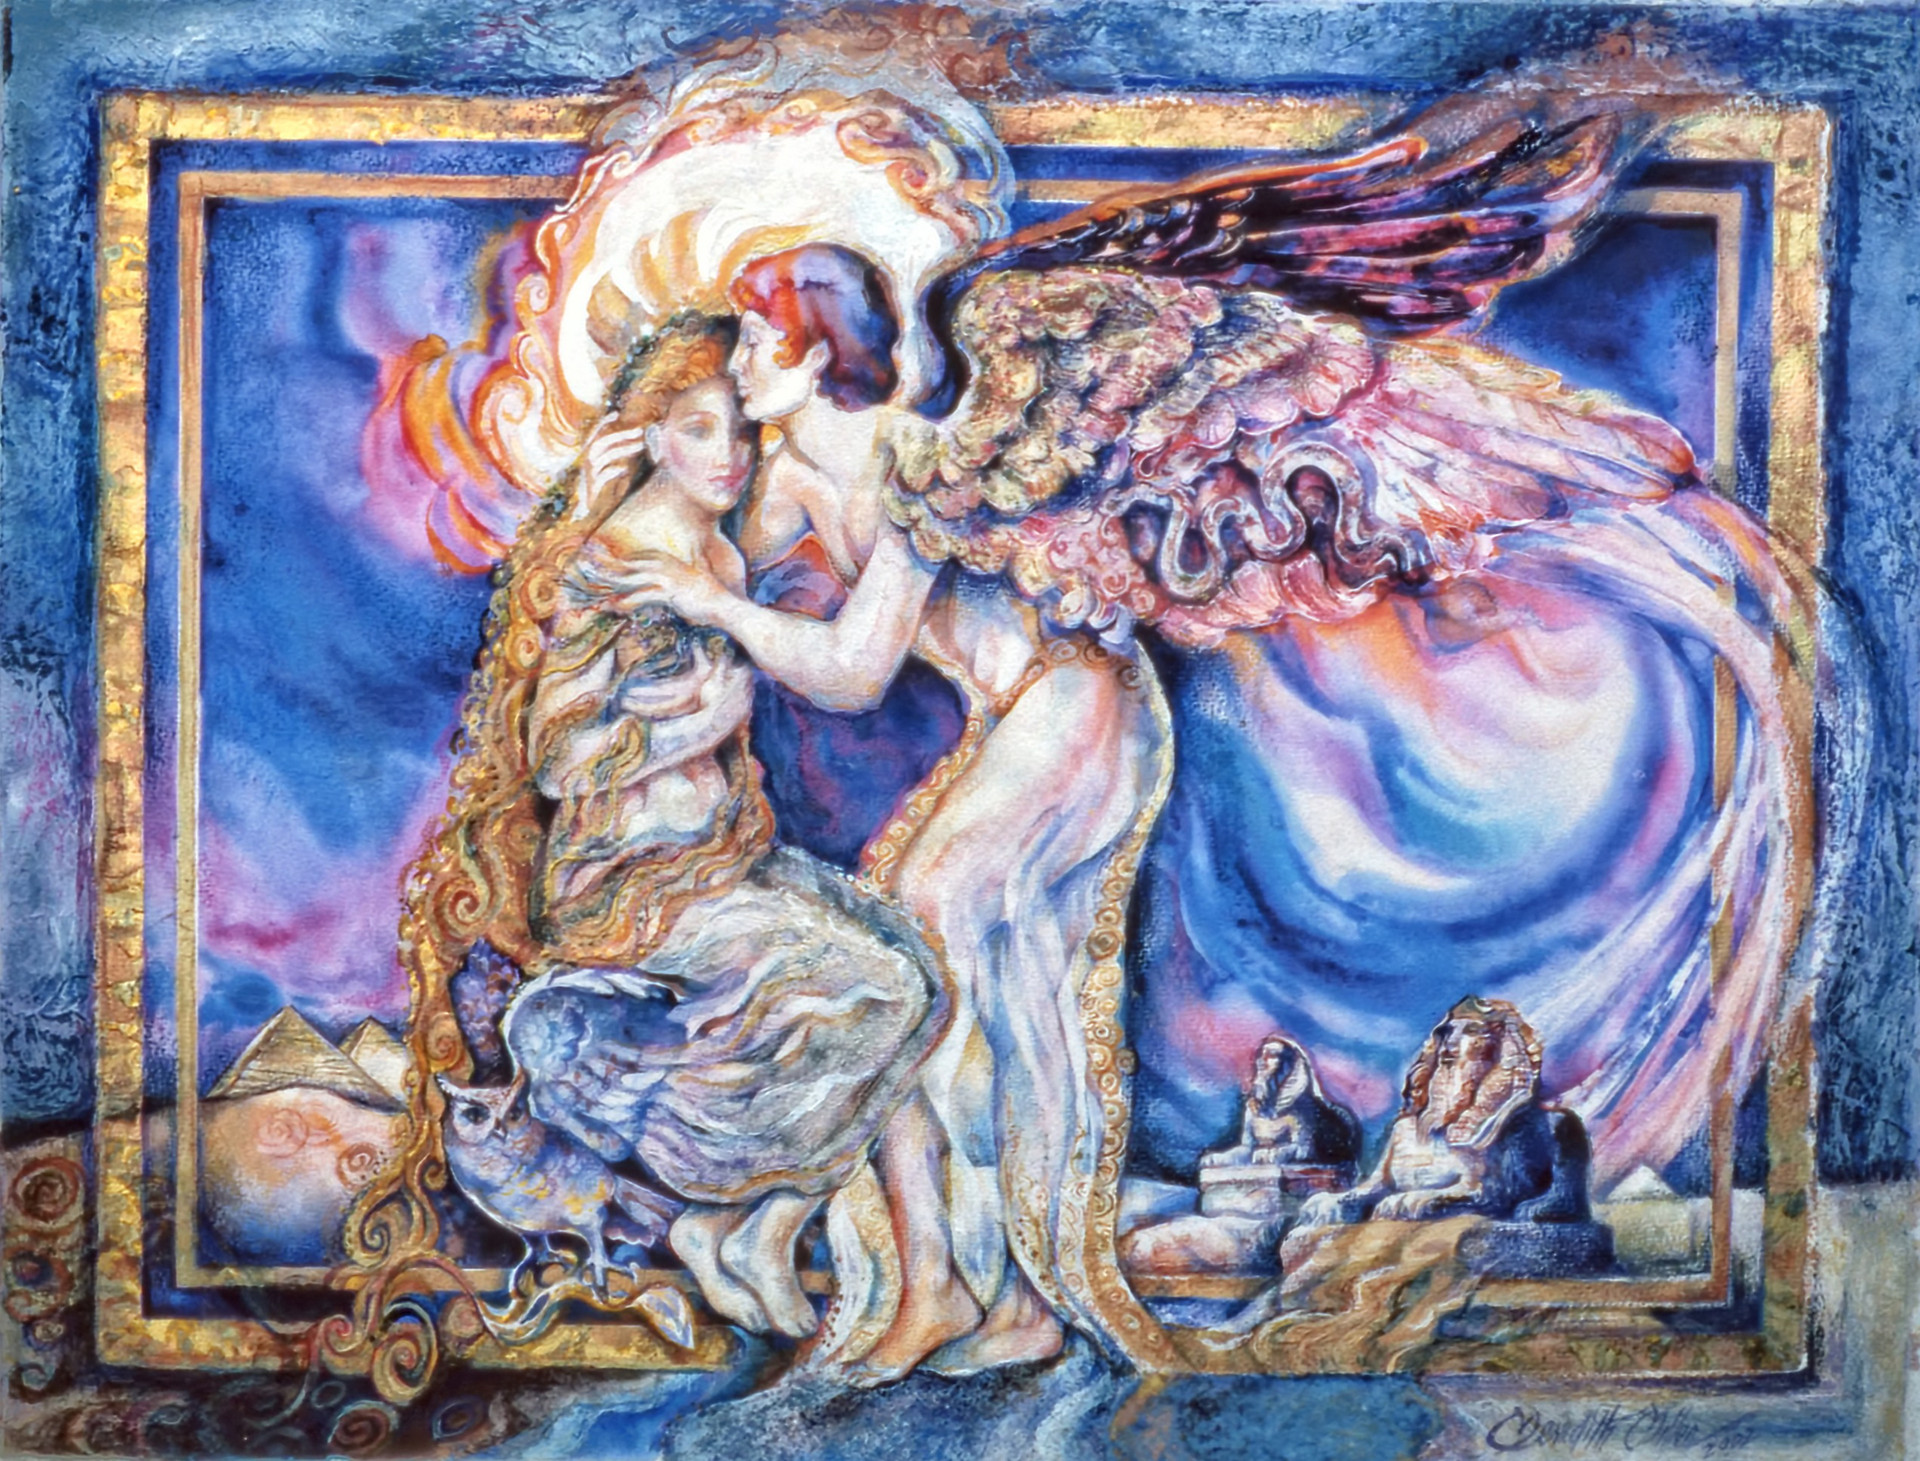 2002 - TOUCH OF THE BELOVED - Mixed Meida with Oil - 24X30